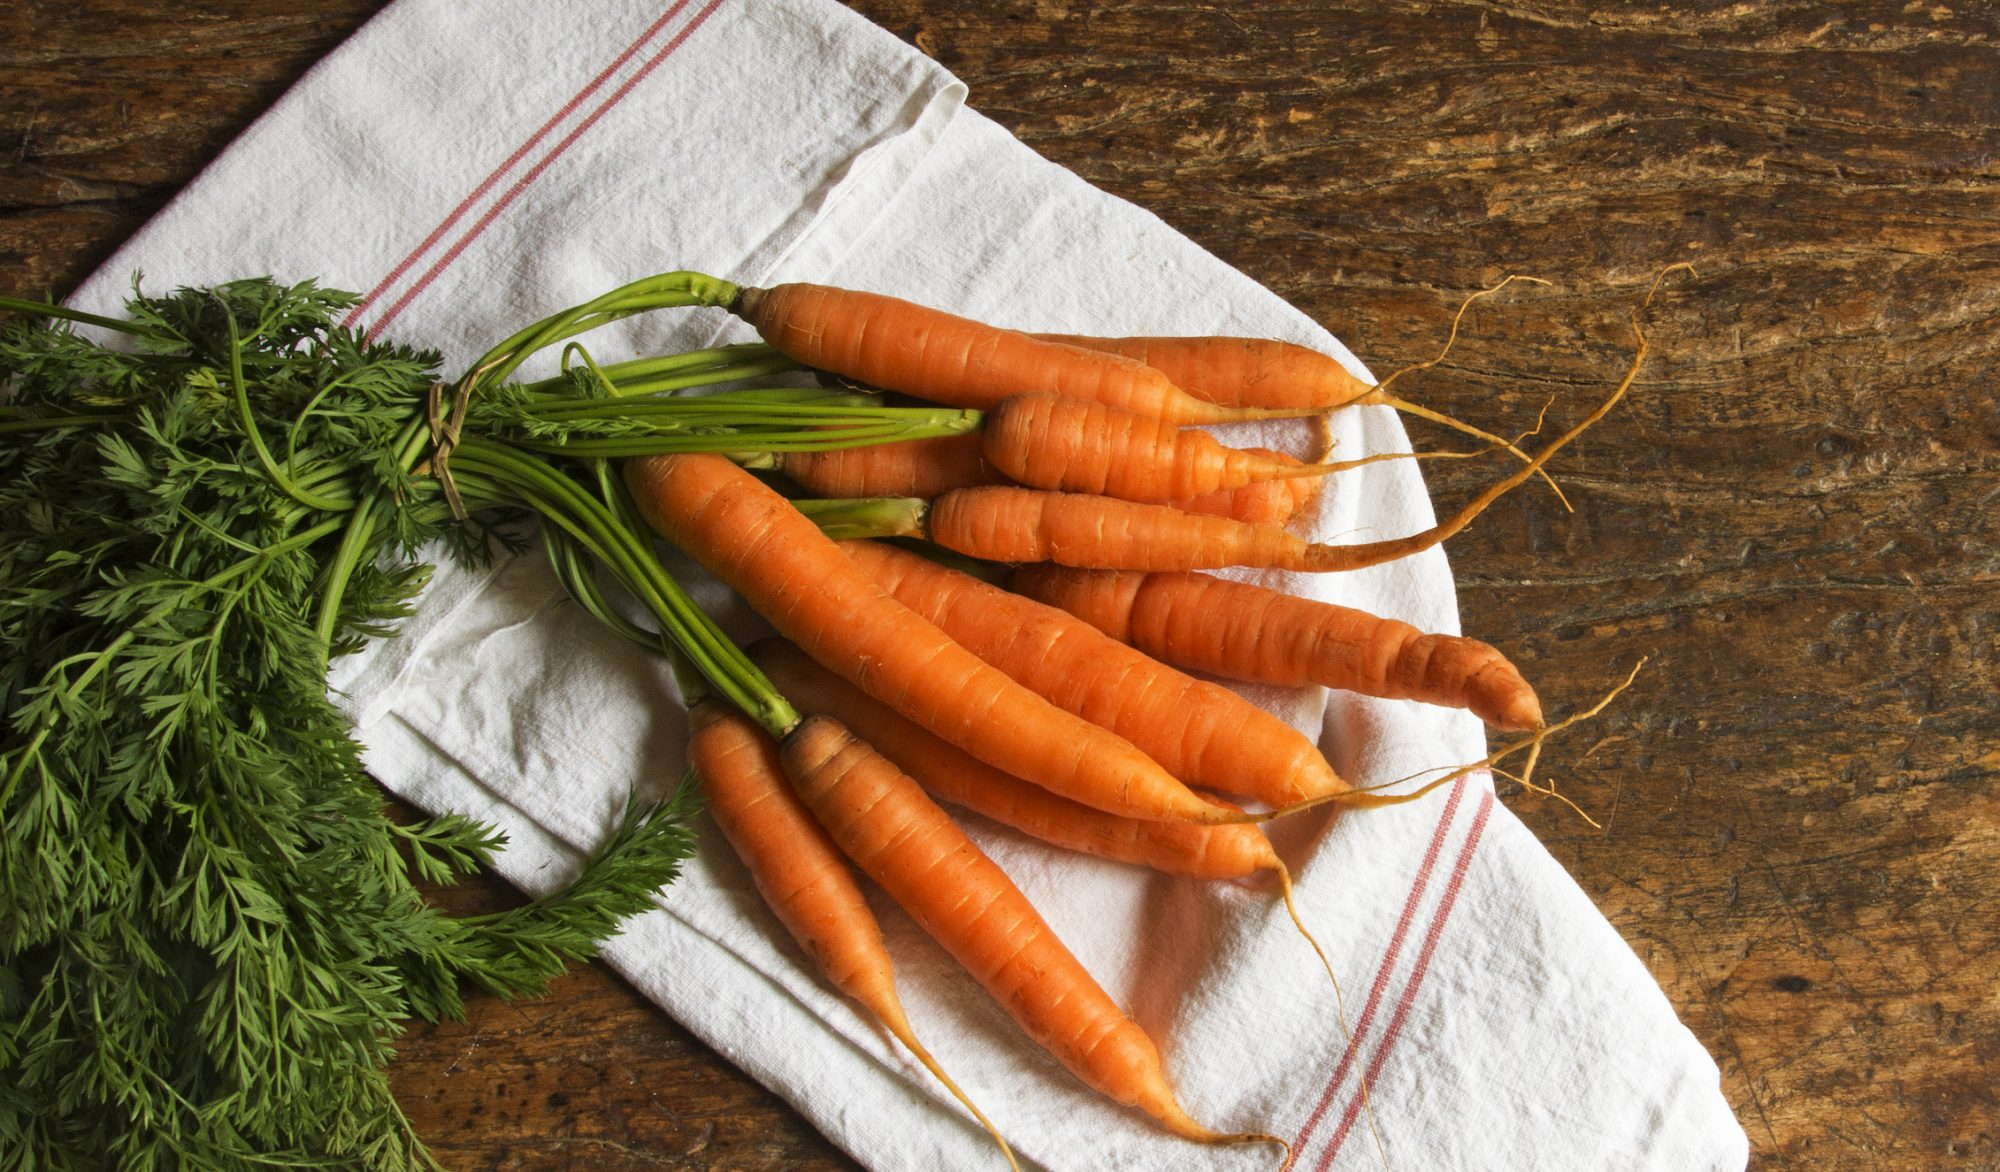 Bunch of organic carrots on a dishcloth